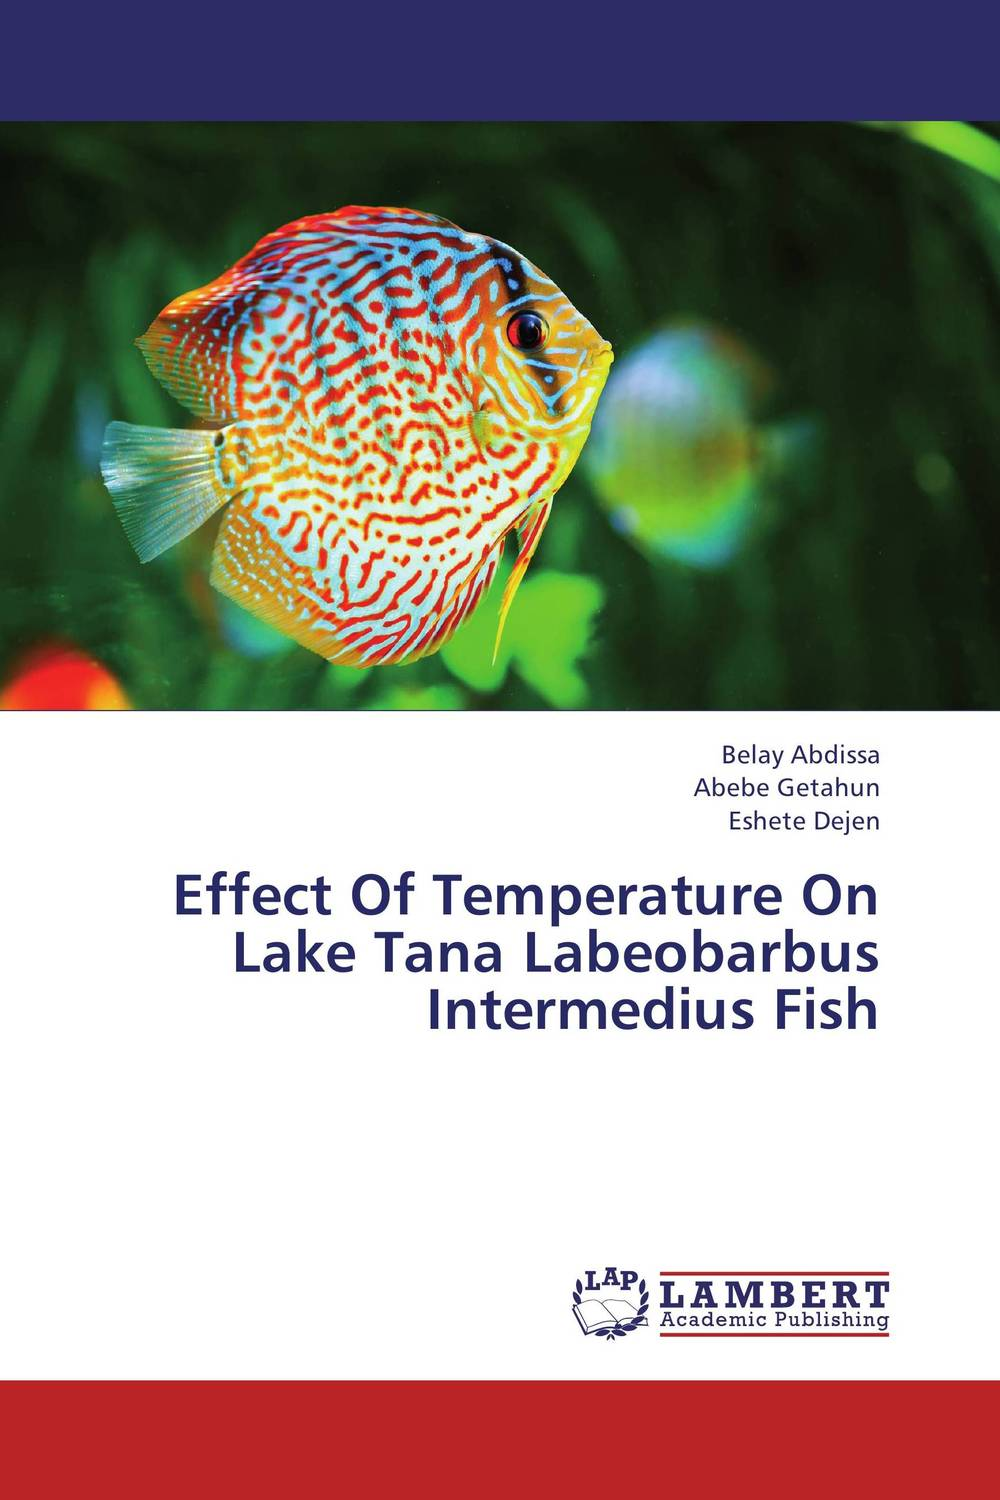 Effect Of Temperature On Lake Tana Labeobarbus Intermedius Fish week at the lake